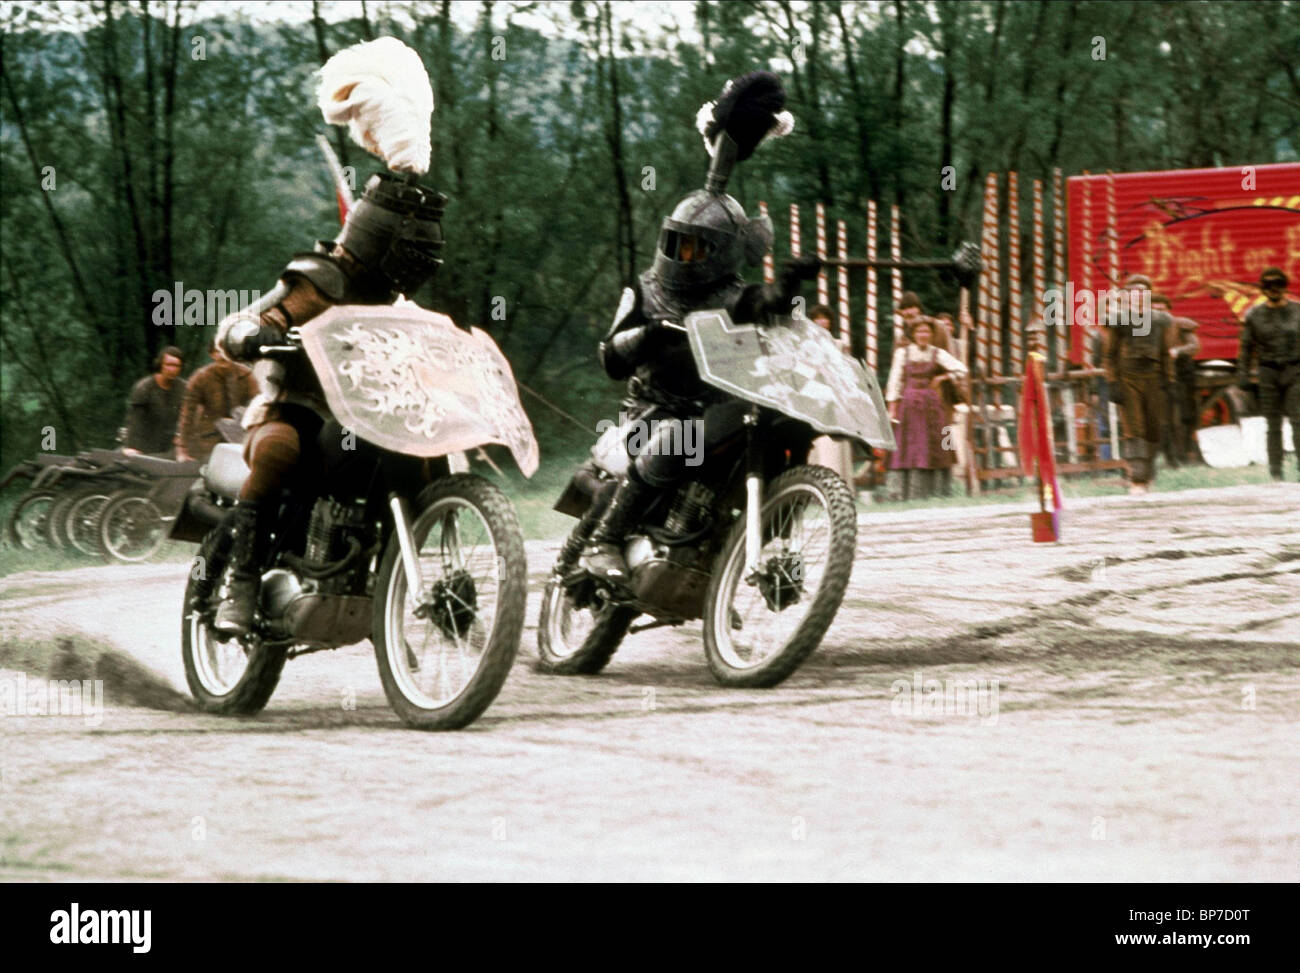 MOTOR CYCLE DUELL KNIGHTRIDERS (1981) - Stock Image